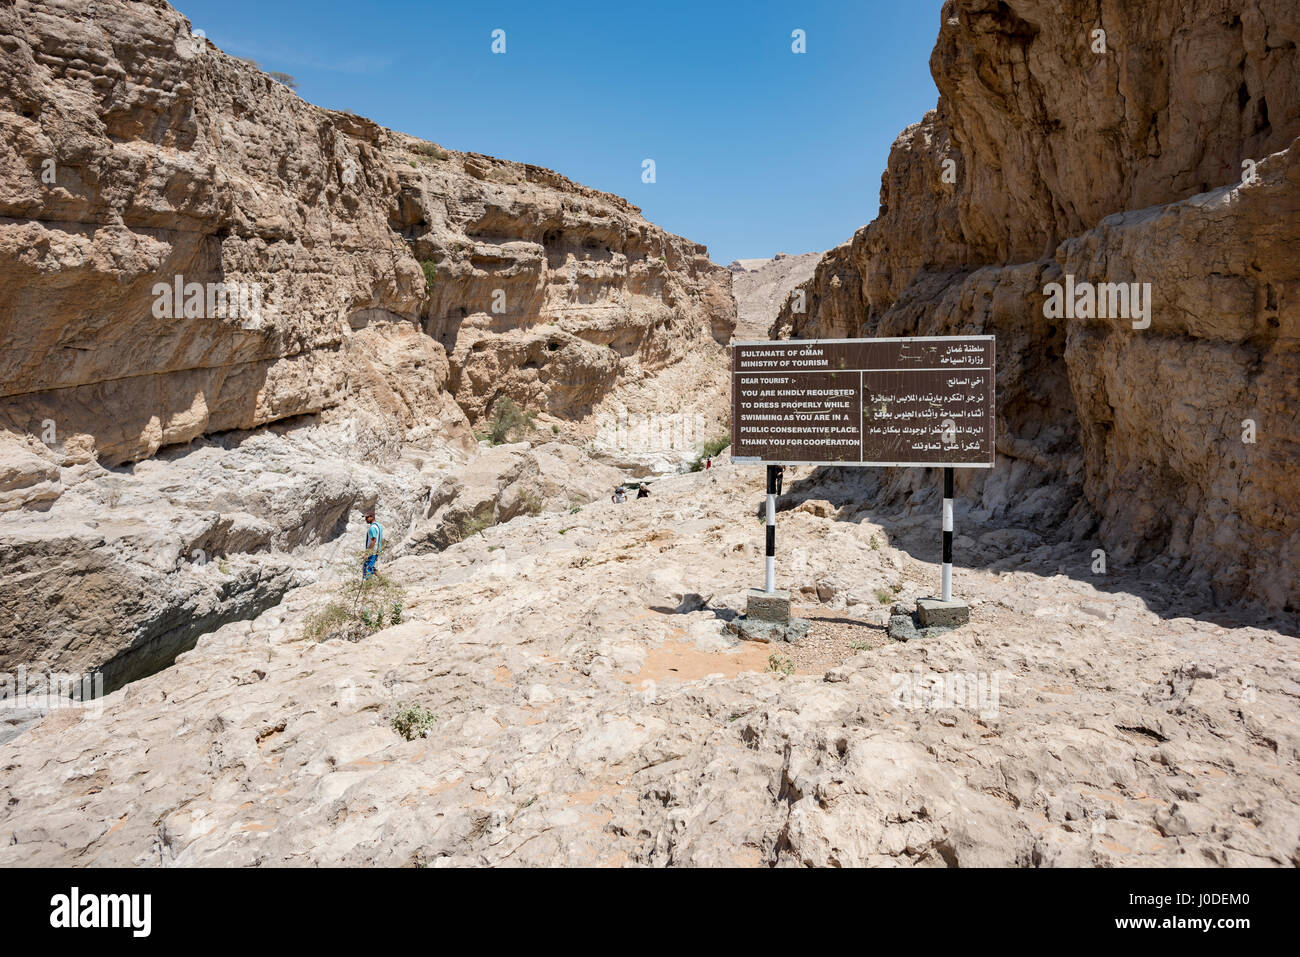 Information baord by the ministry of Tourism in Wadi Bani Khalid, Oman - Stock Image